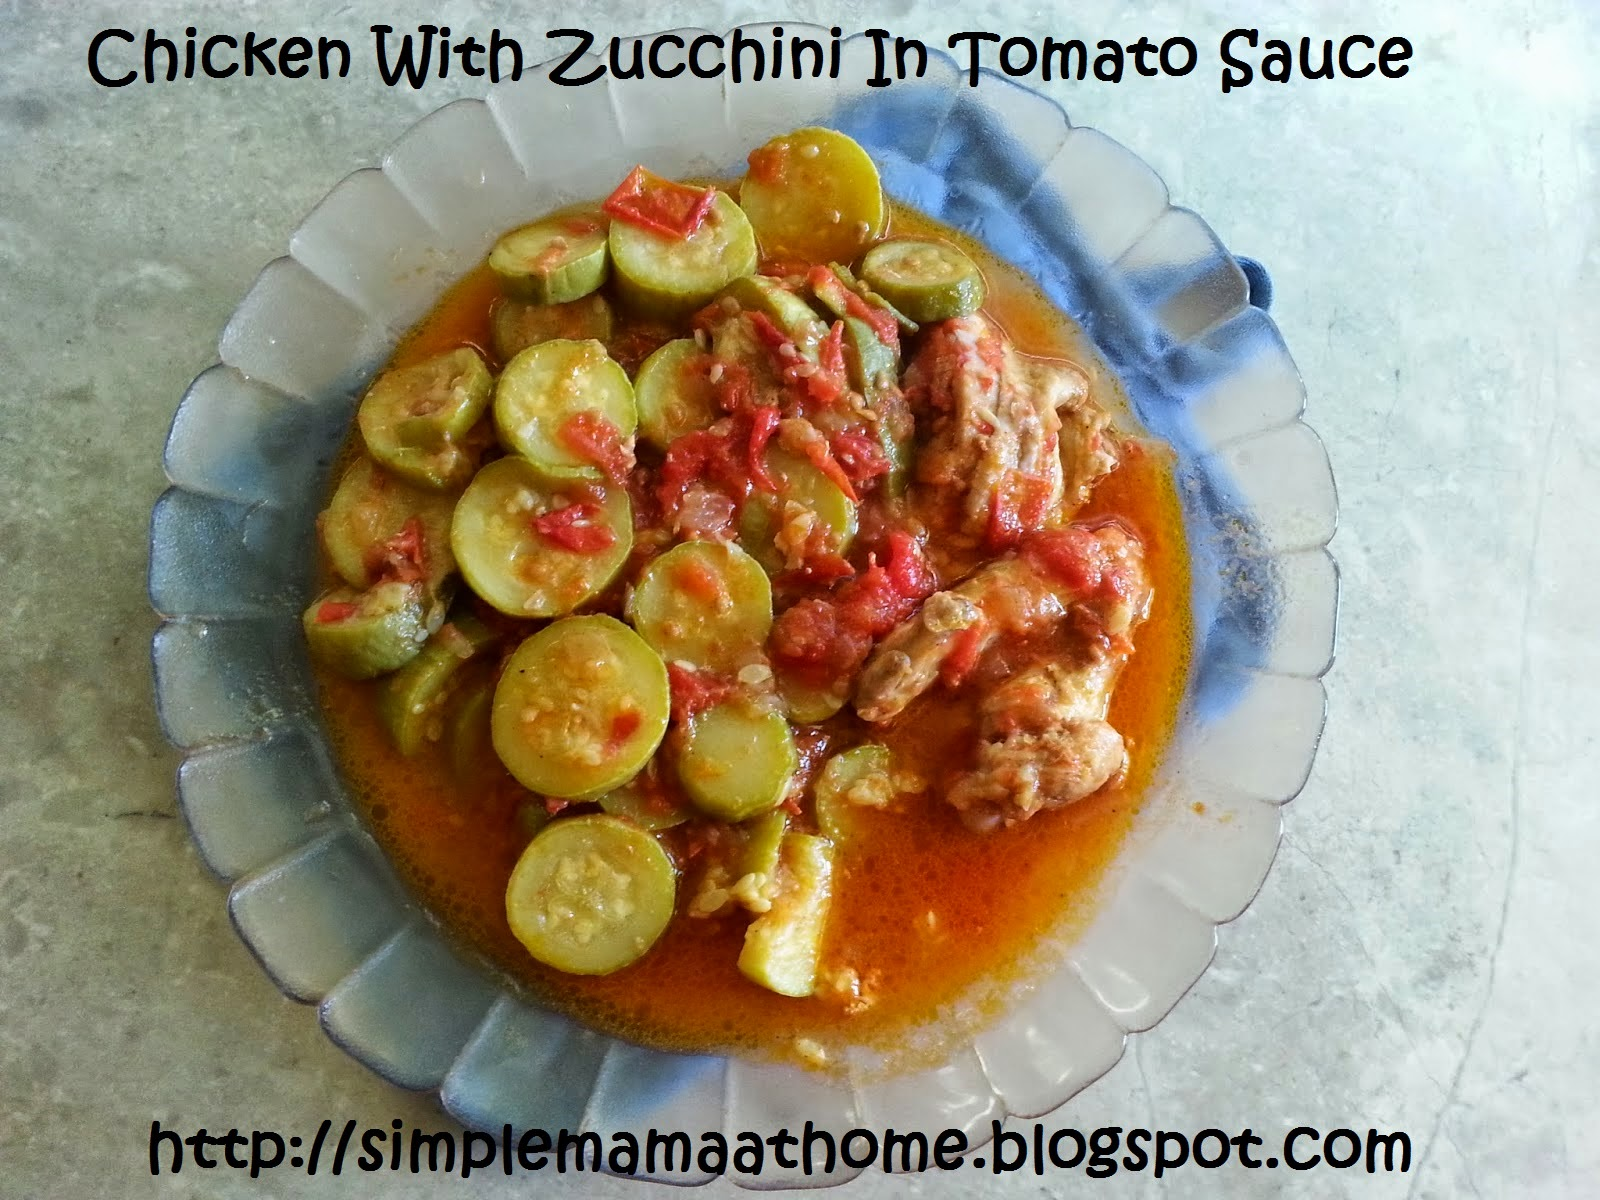 Chicken With Zucchini In Tomato Sauce